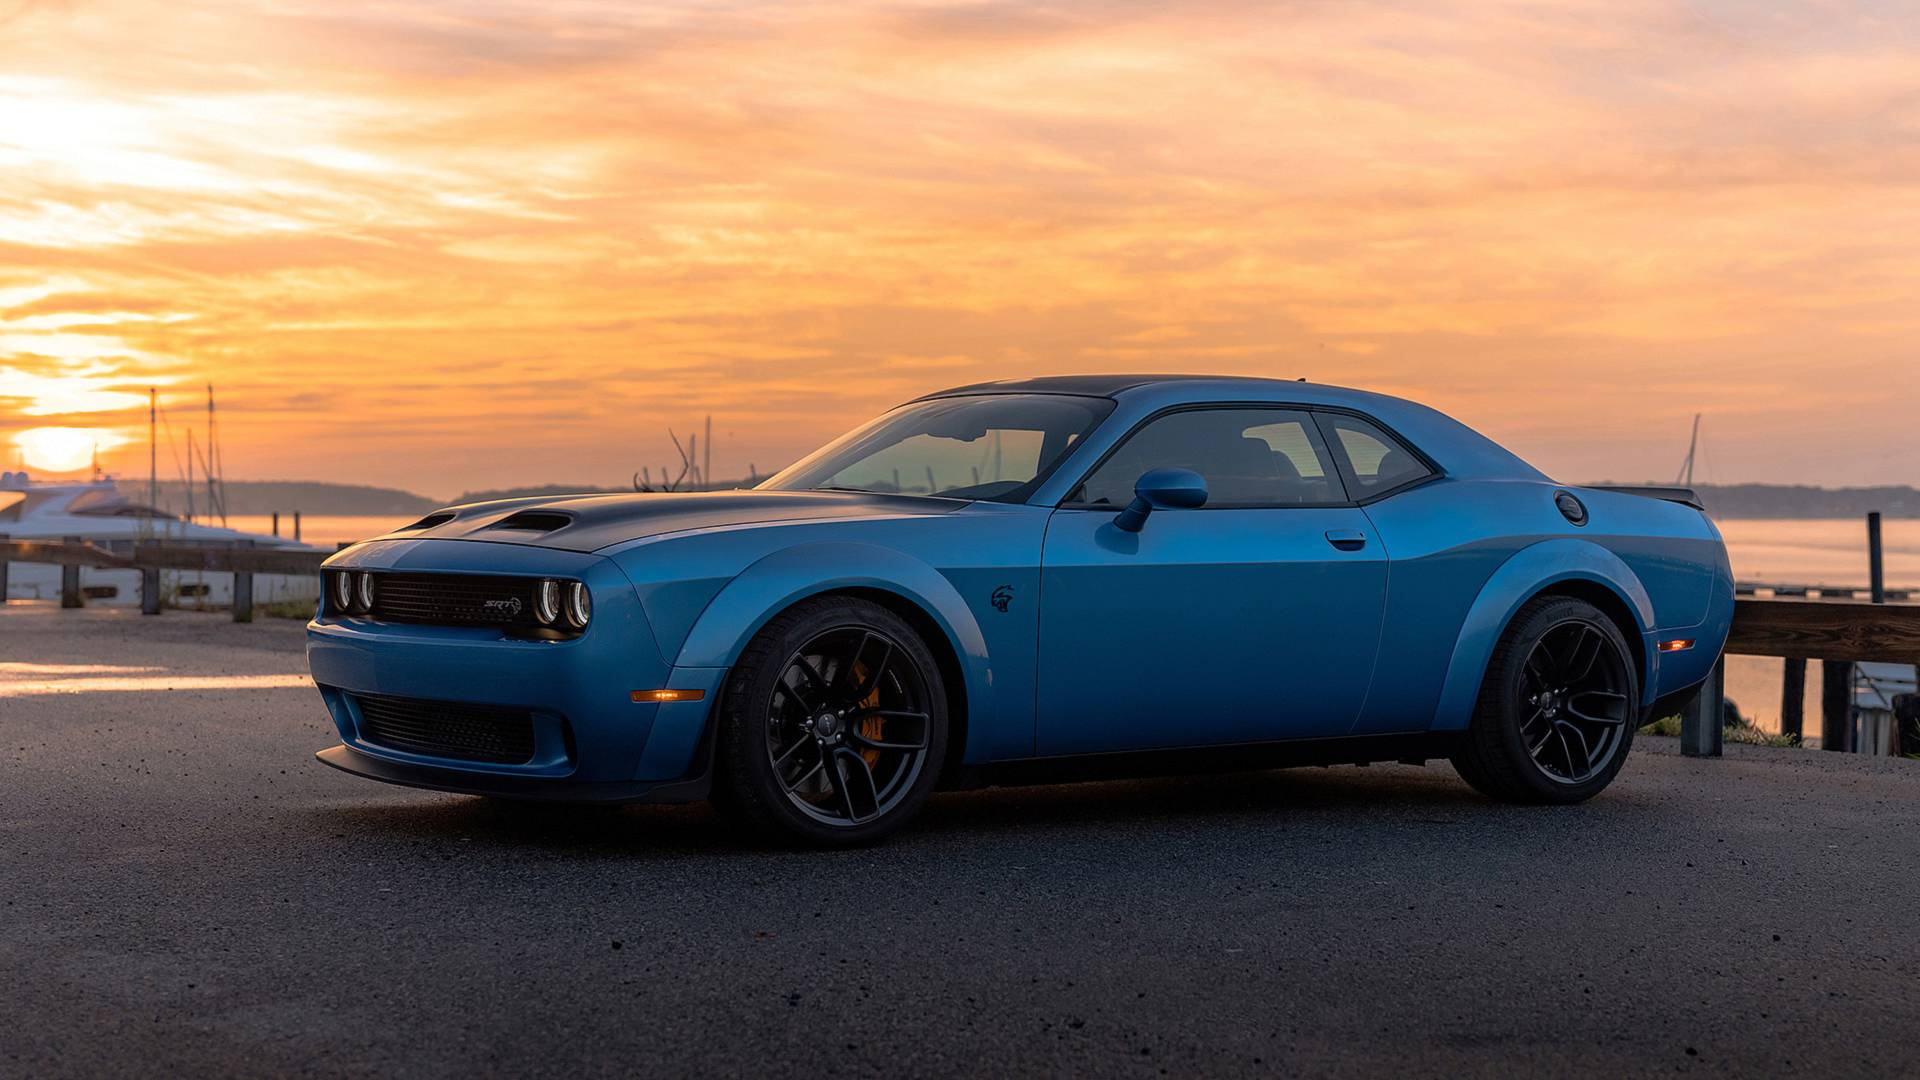 Dodge Challenger Srt Hellcat >> 2019 Dodge Challenger Srt Hellcat Redeye First Drive Demon